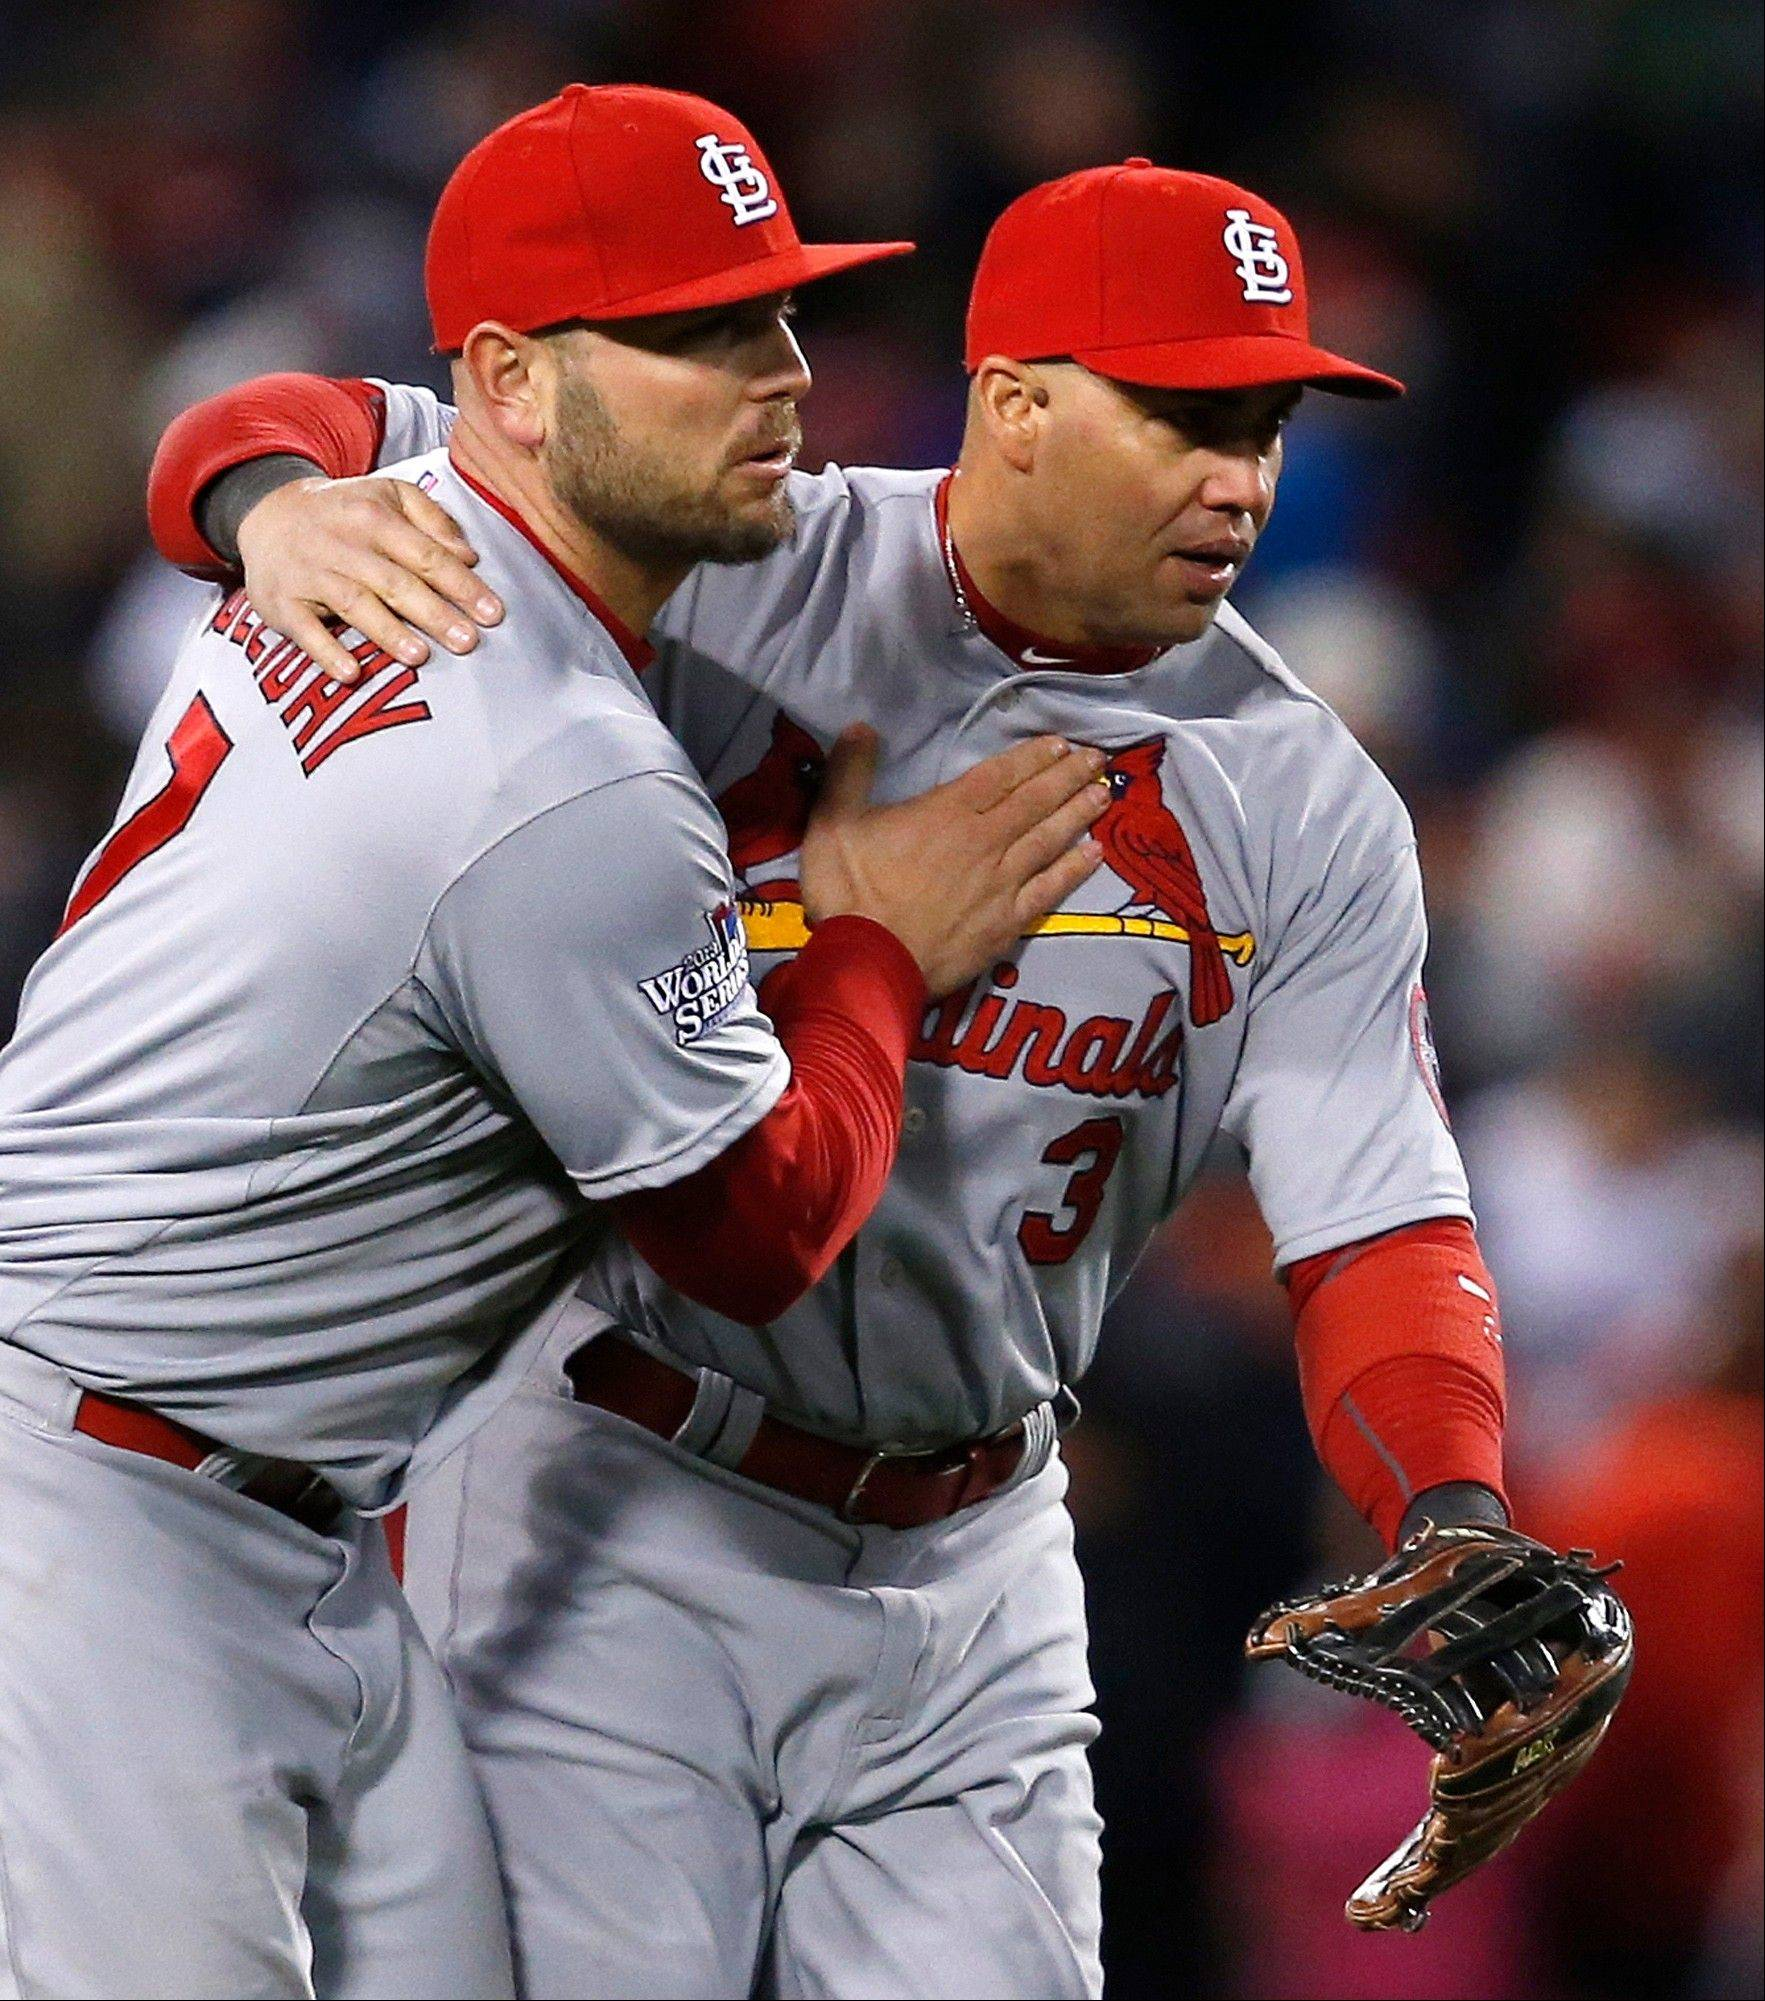 The Cardinals' Matt Holliday, left, and Carlos Beltran celebrate after Game 2 of the World Series against the Boston Red Sox on Thursday at Fenway Park. The Cardinals won 4-2 to tie the series at 1-1.